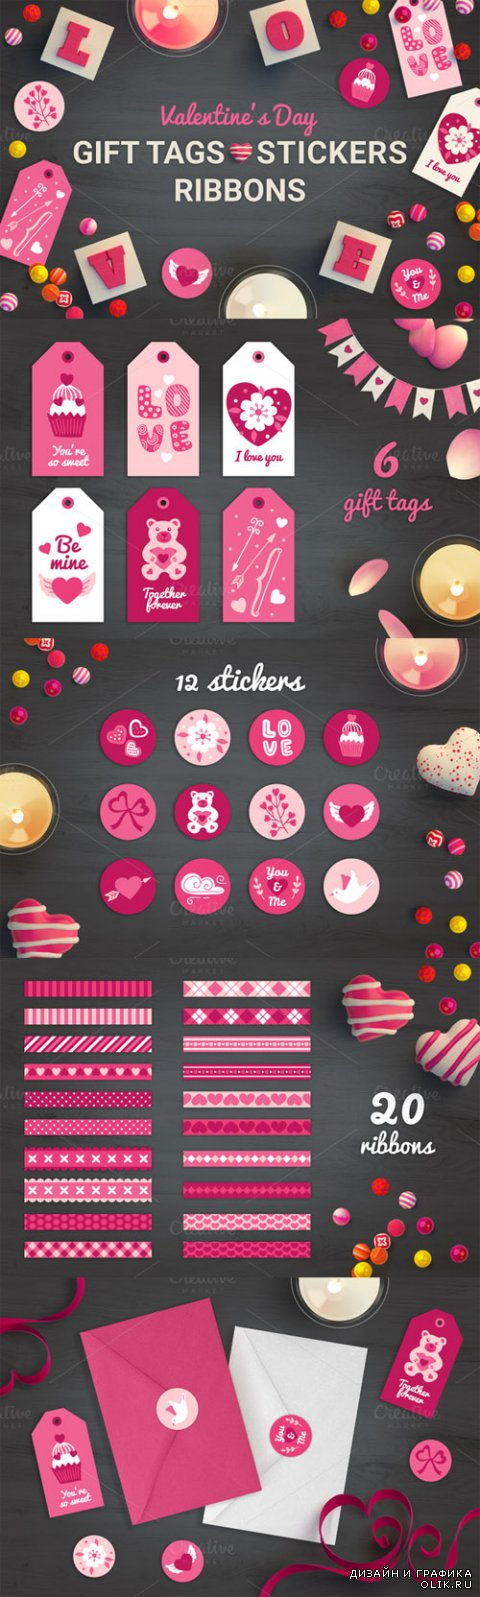 Valentine Elements - Creativemarket 486735